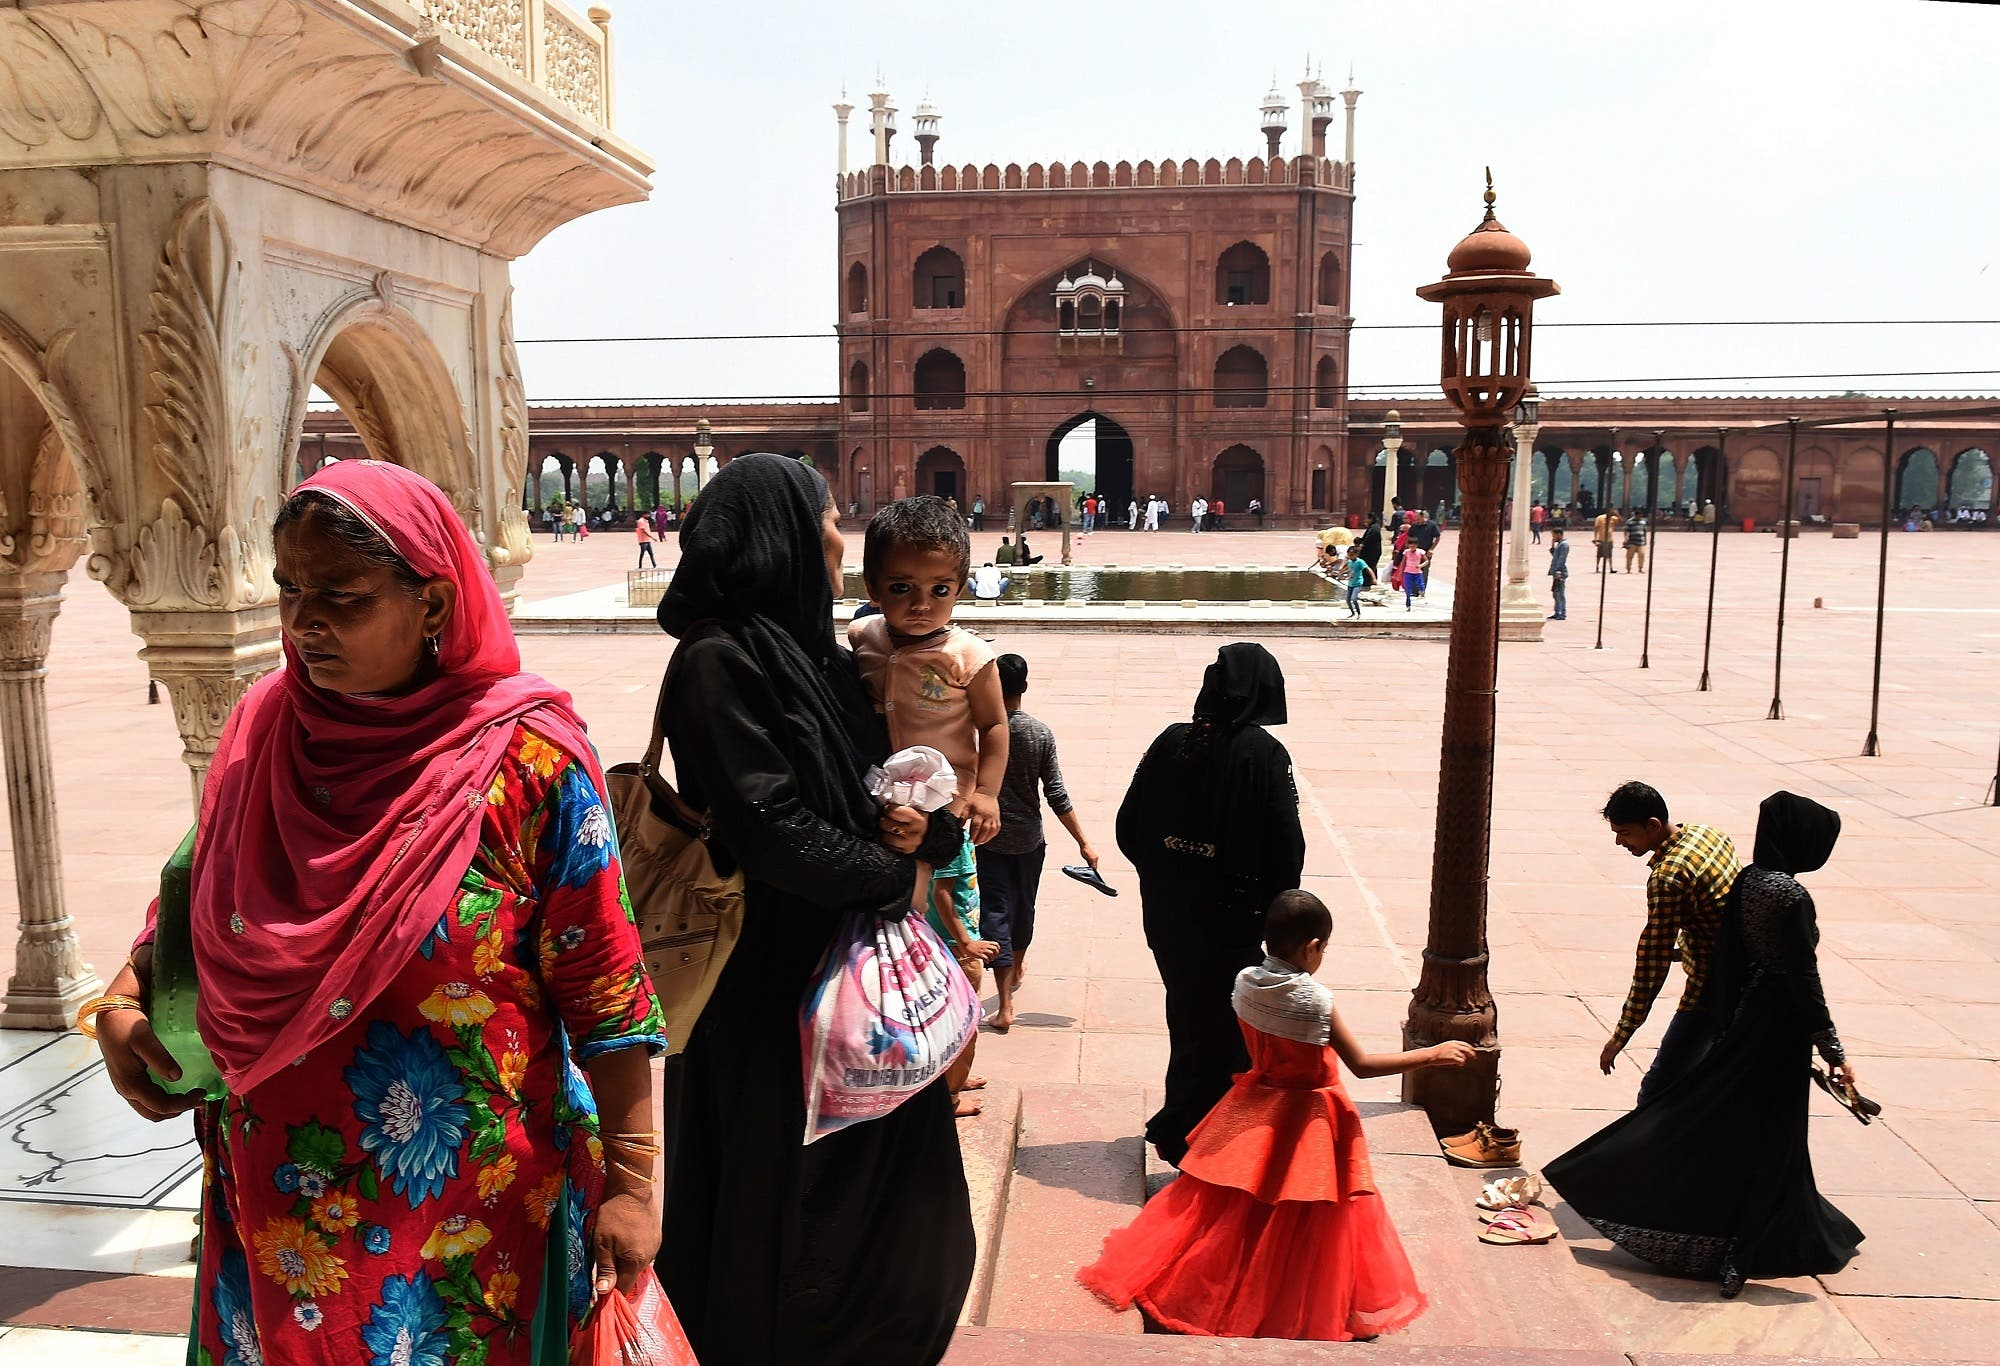 Indian Muslims visit the Jama Masjid mosque in New Delhi on August 22, 2017. (AFP)